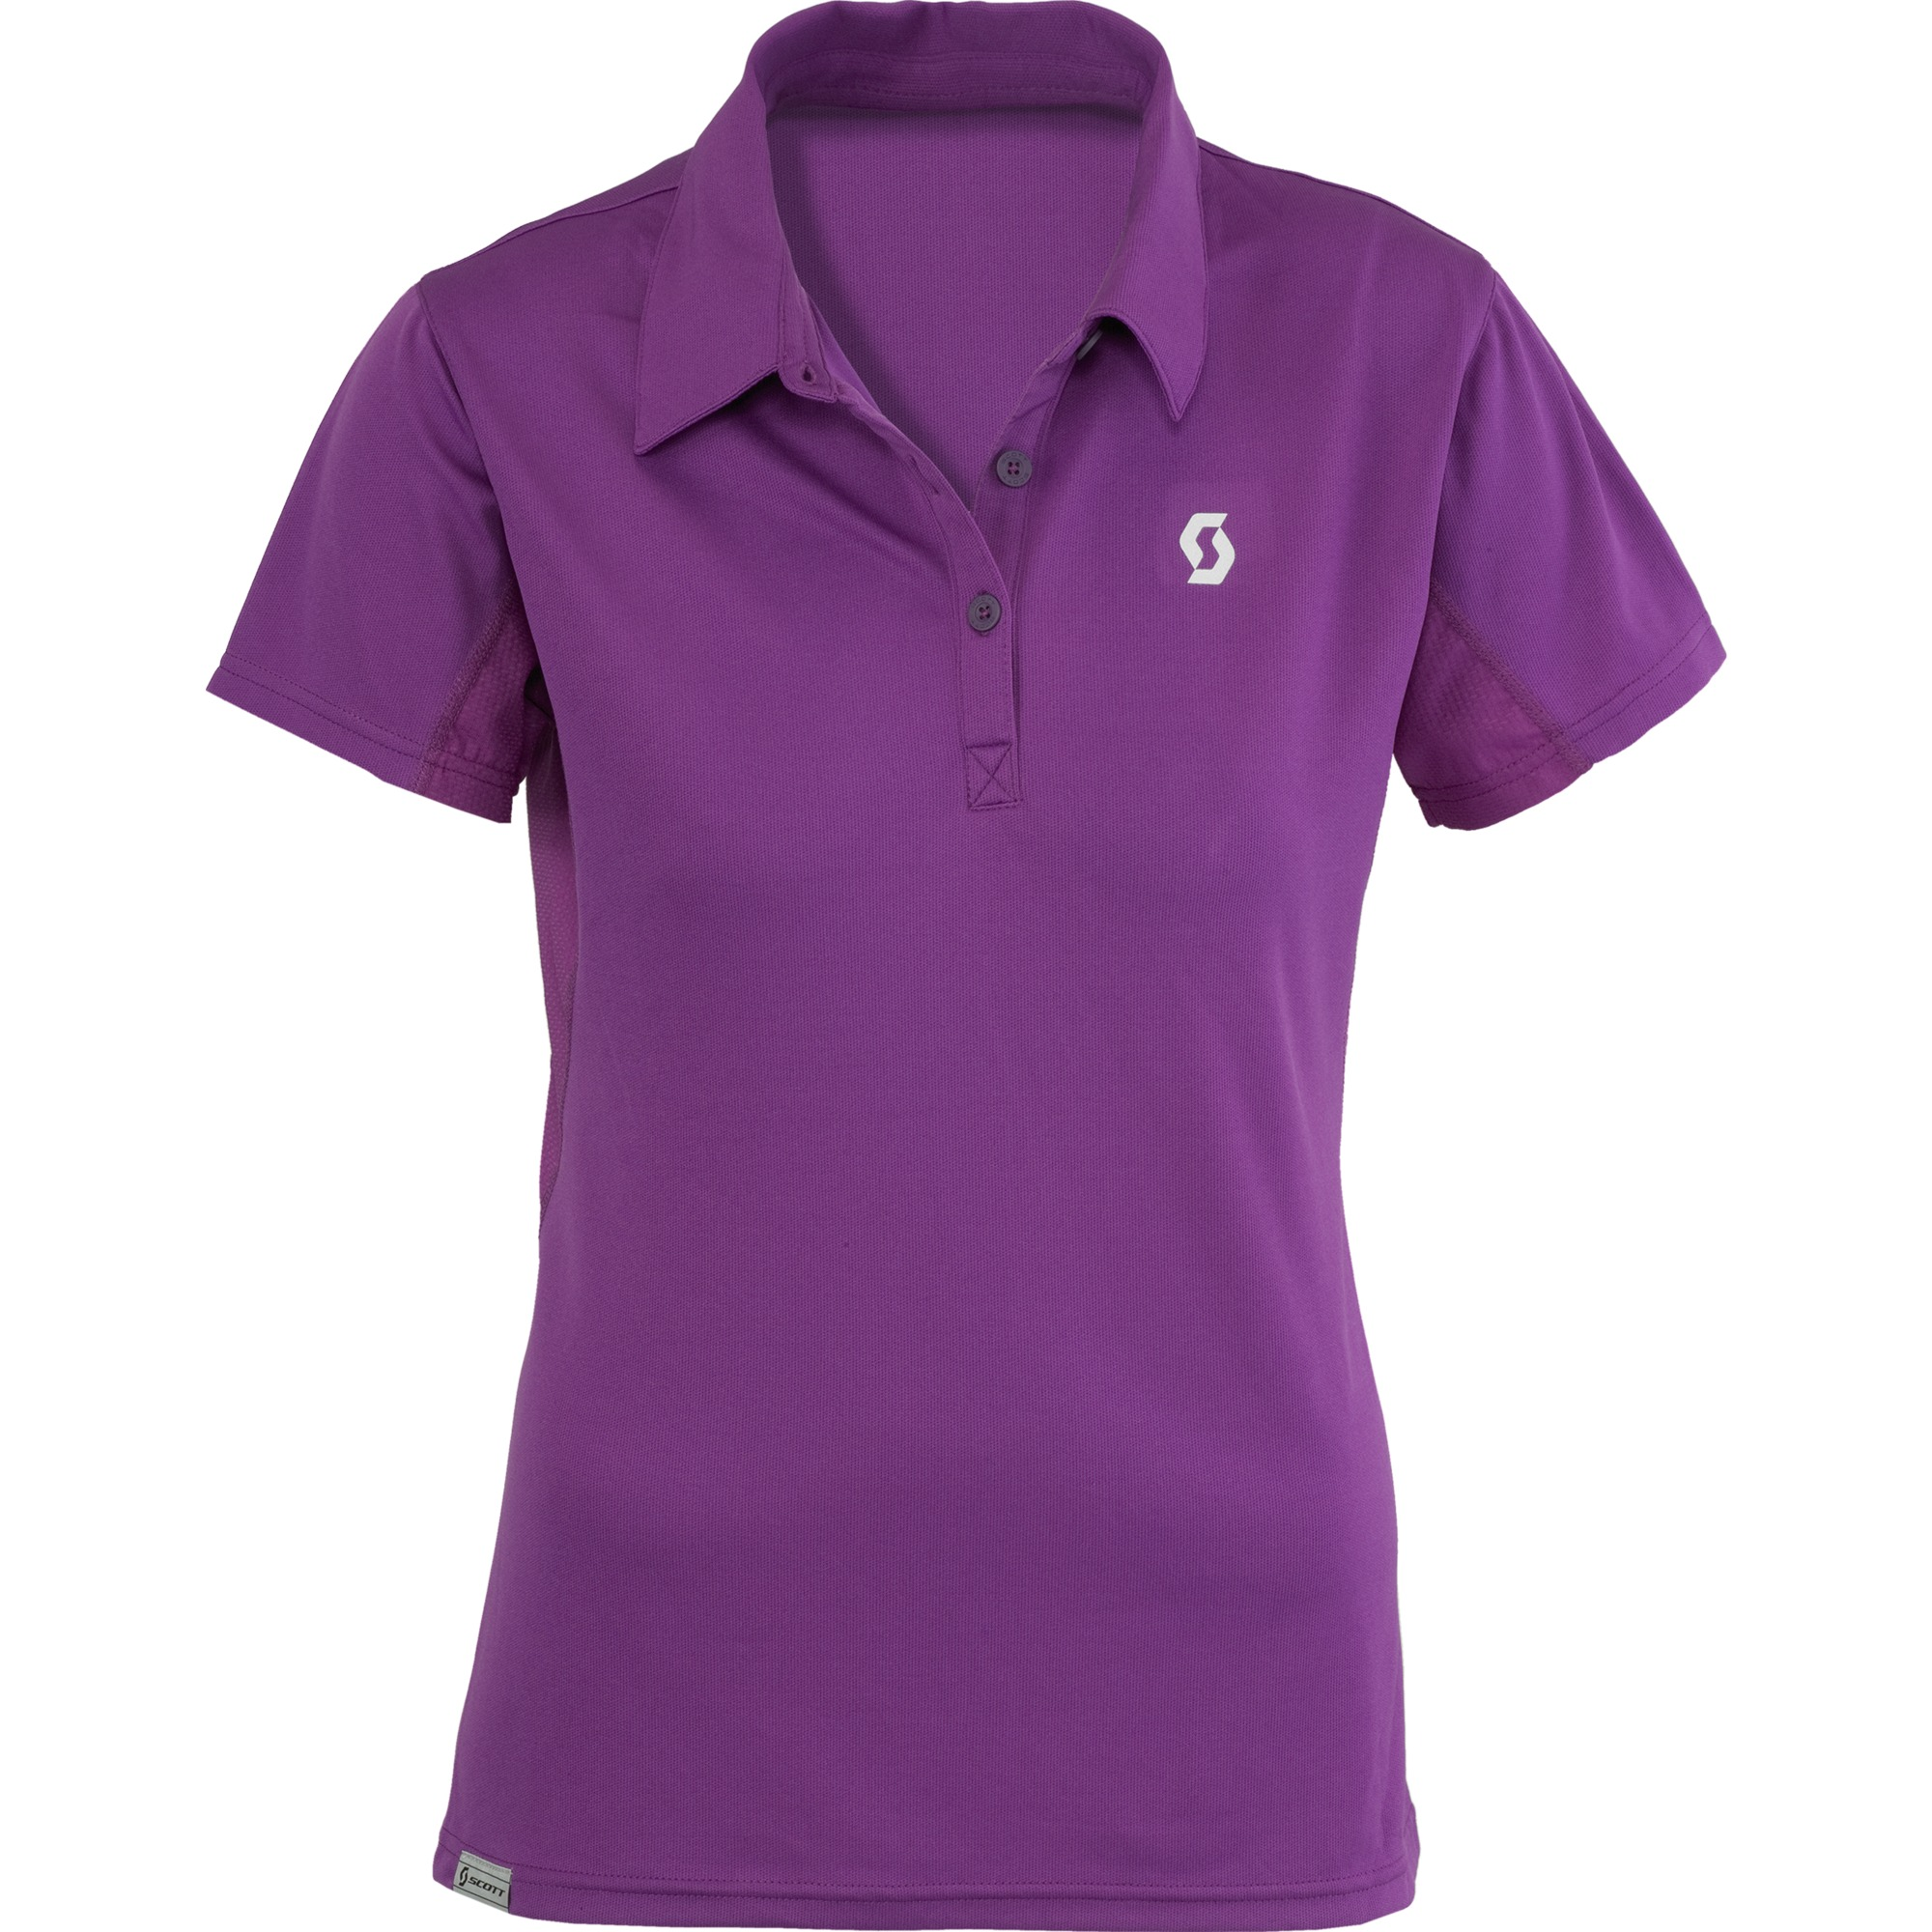 women 39 s wear polo shirt women 39 s wear polo shirt